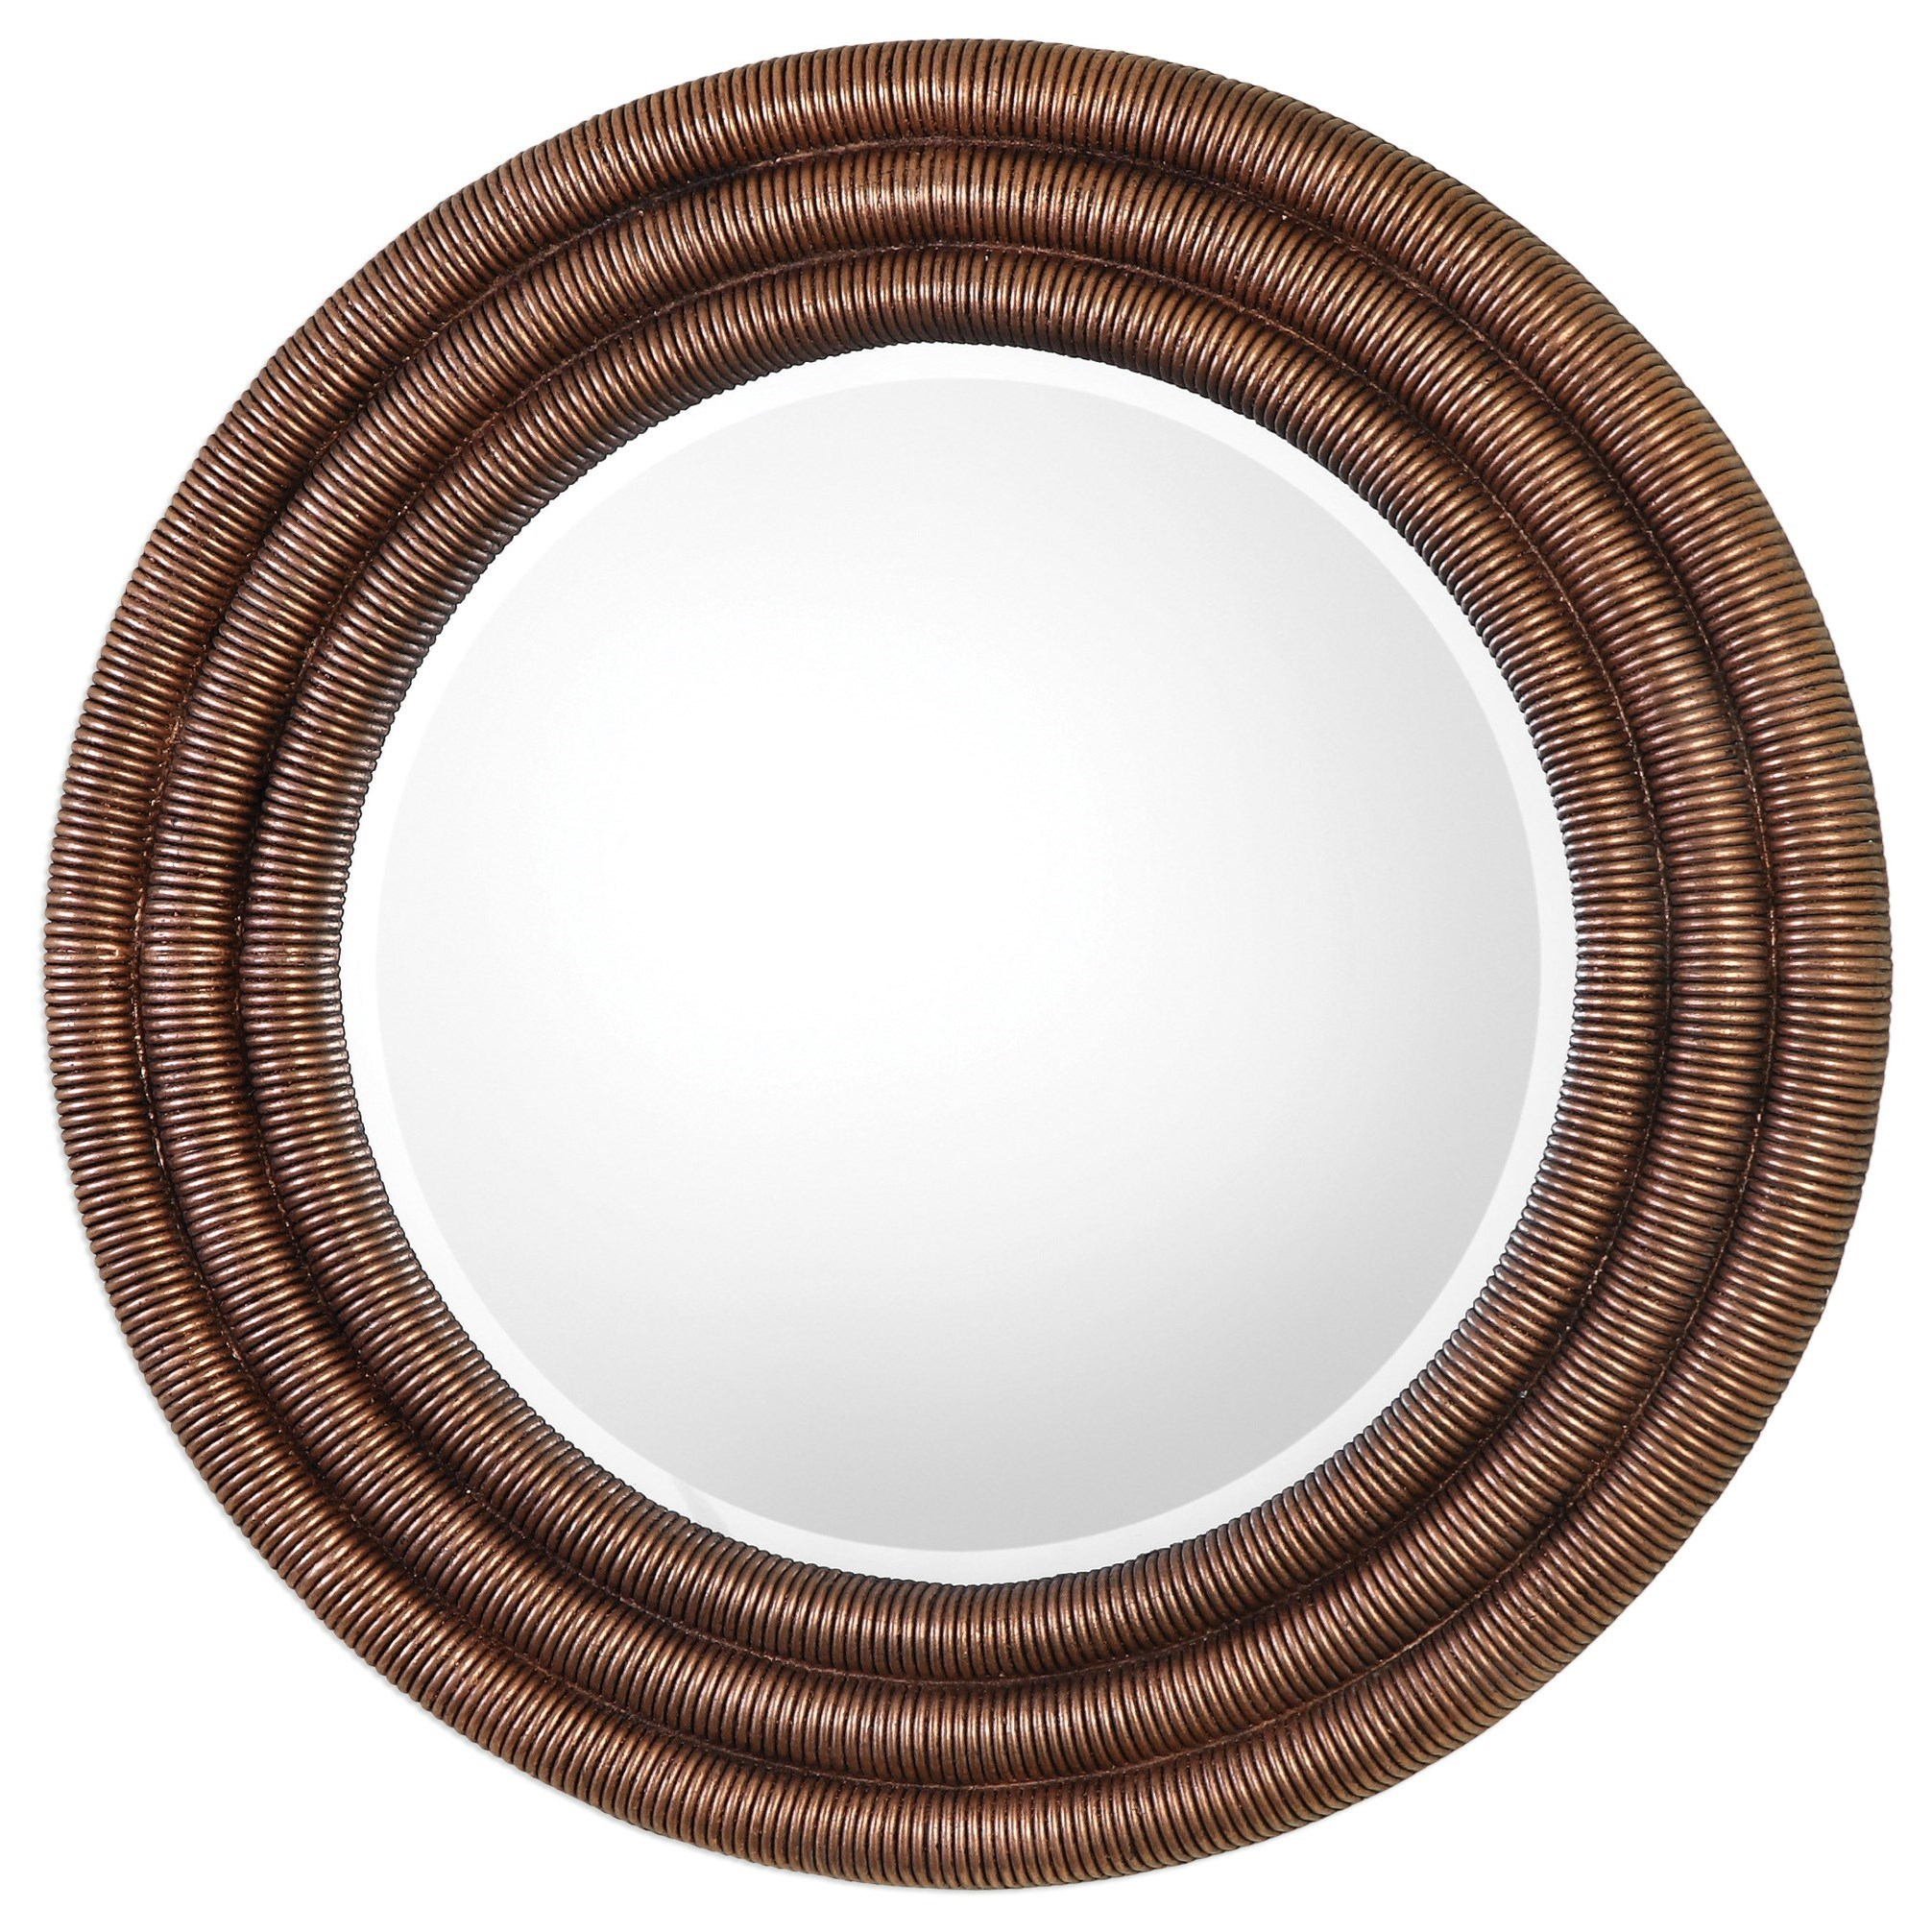 Uttermost Mirrors  Helical Round Copper Mirror - Item Number: 09143